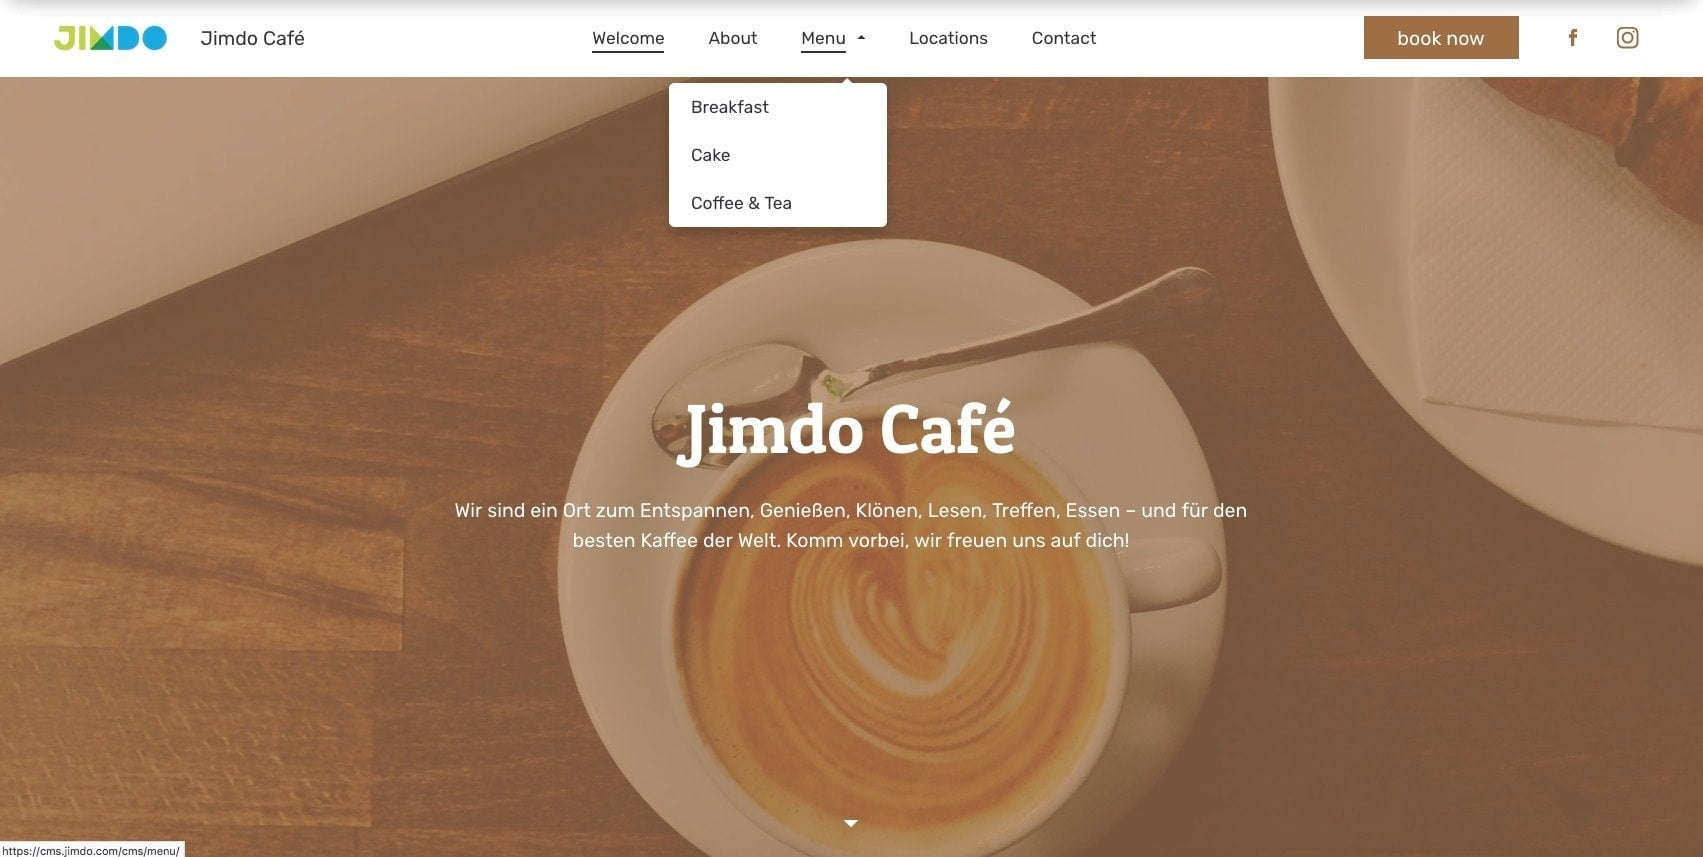 An example of adding more pages with a dropdown navigation menu on a Jimdo website.